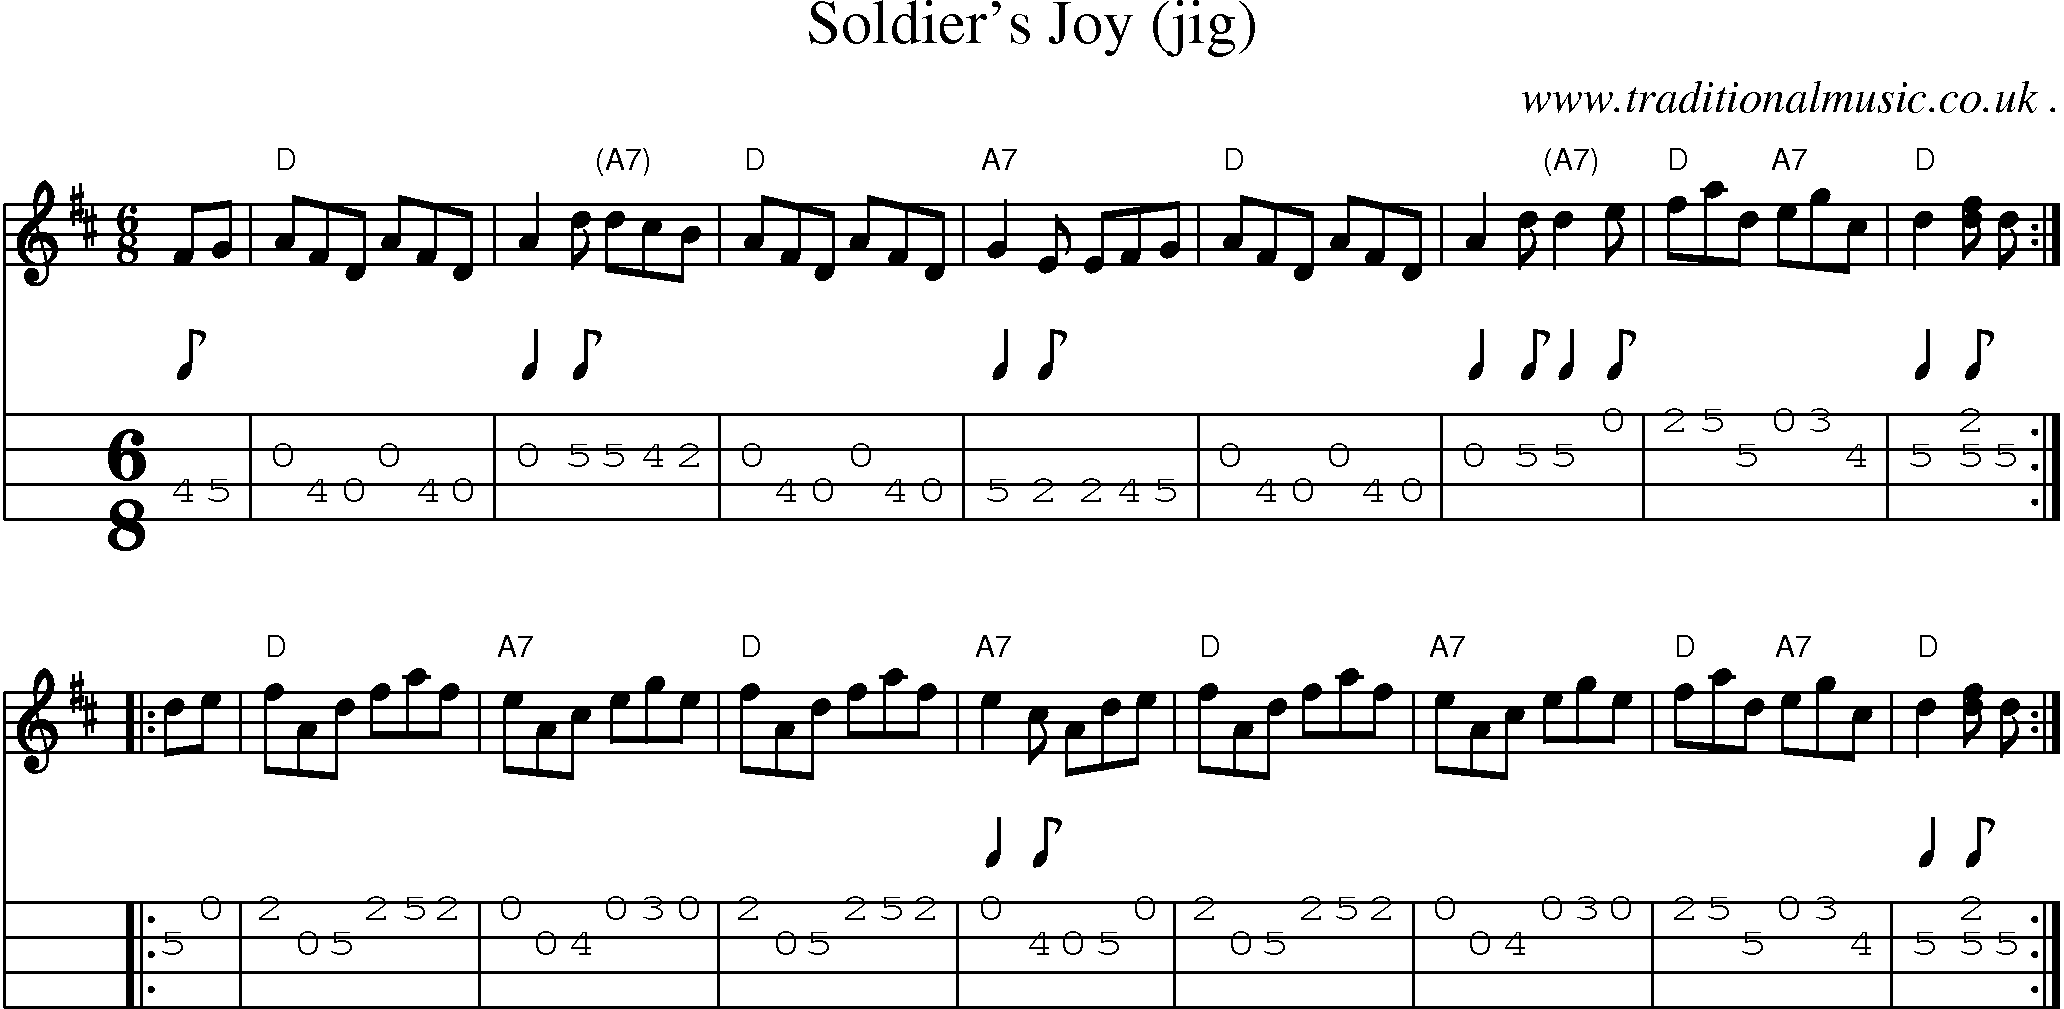 Sheet Music Score Chords And Mandolin Tabs For Soldiers Joy Jig